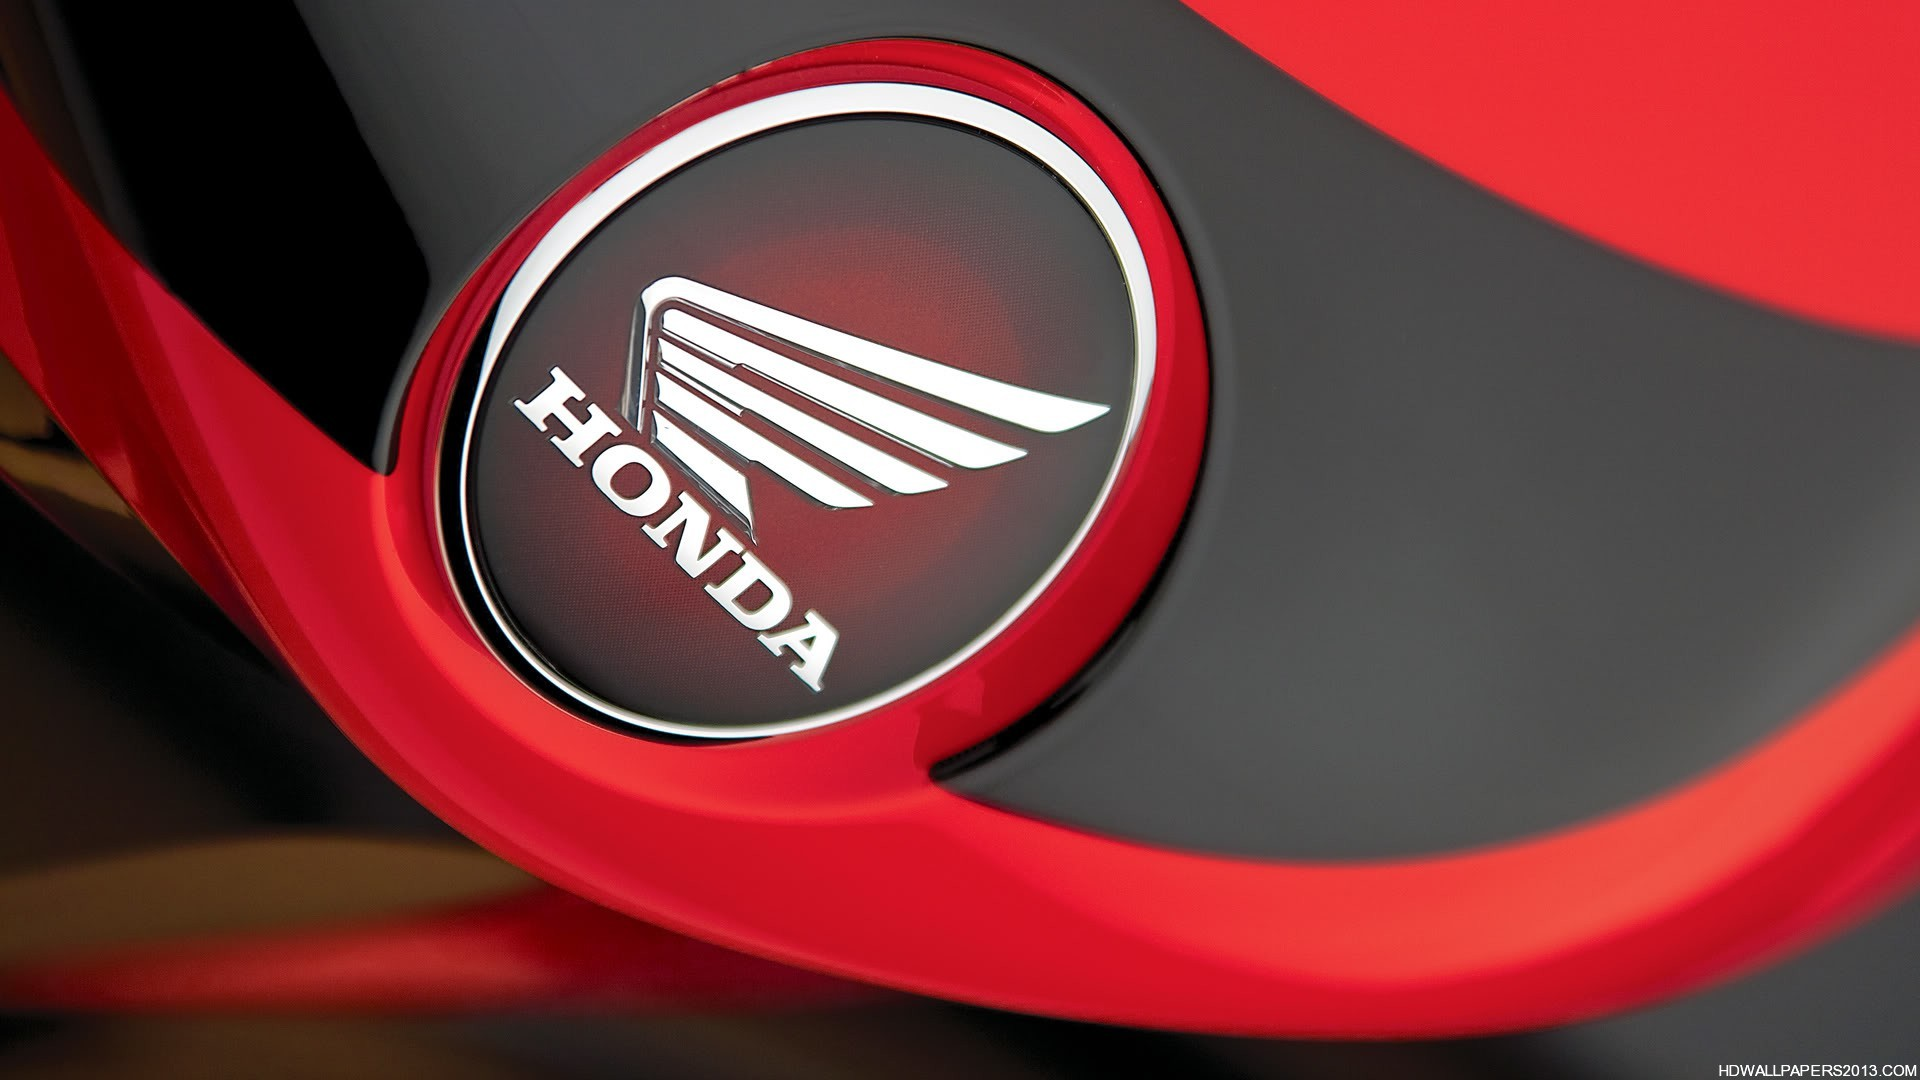 honda logo wallpaper hd wallpapers honda logo wallpaper hd backgrounds 1920x1080